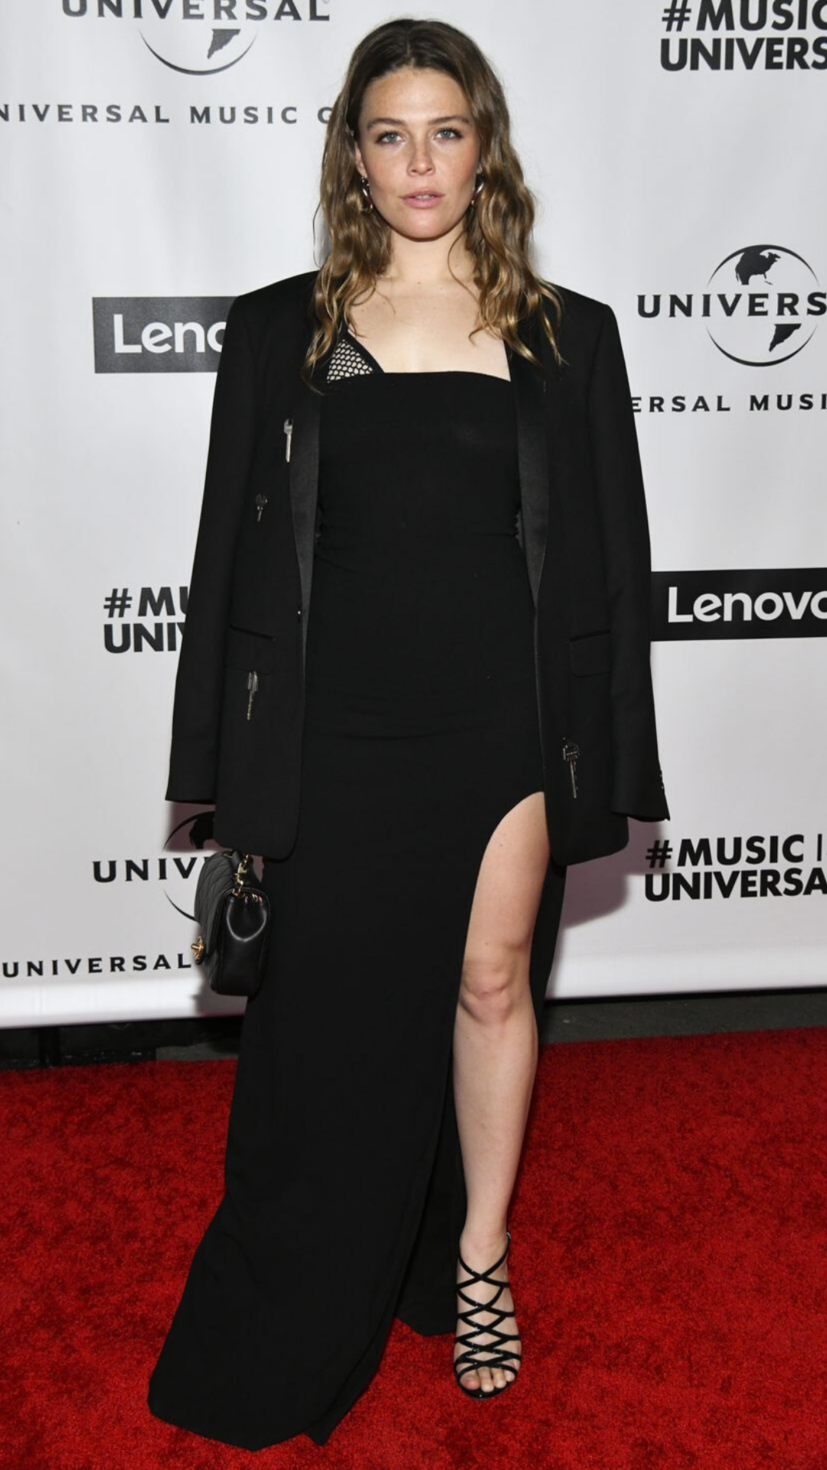 Maggie Rogers wears a black dress with a matching Chanel bag